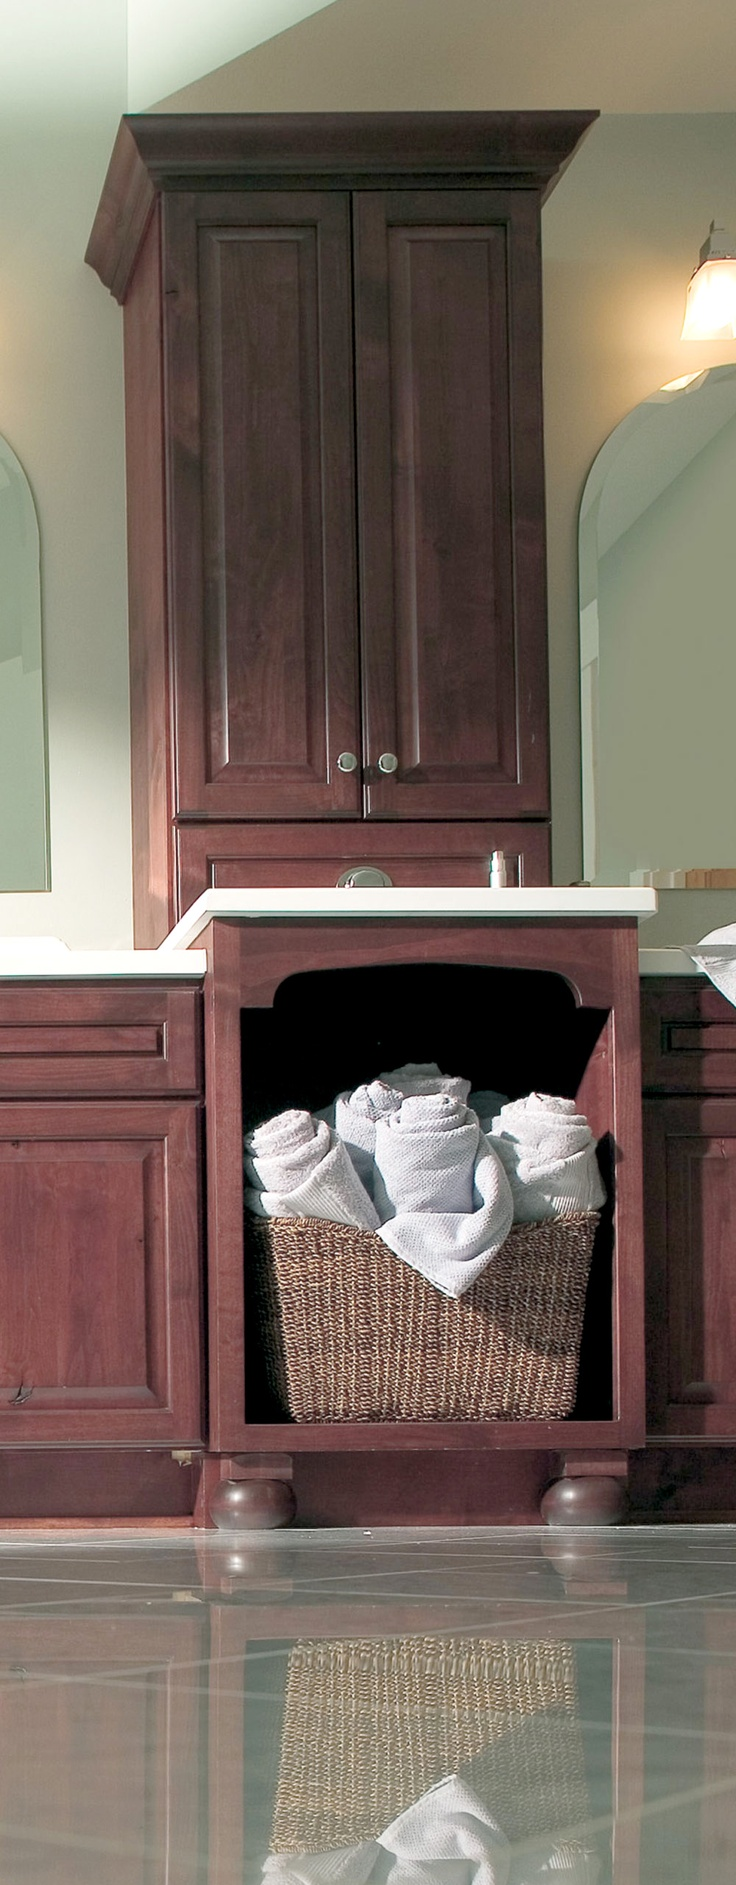 Include #laundry #basket #storage in your #bathroom #vanity #design to accommodate freshly clean towels or your dirty linens and garments. – Dura Supreme Bathroom #Cabinetry